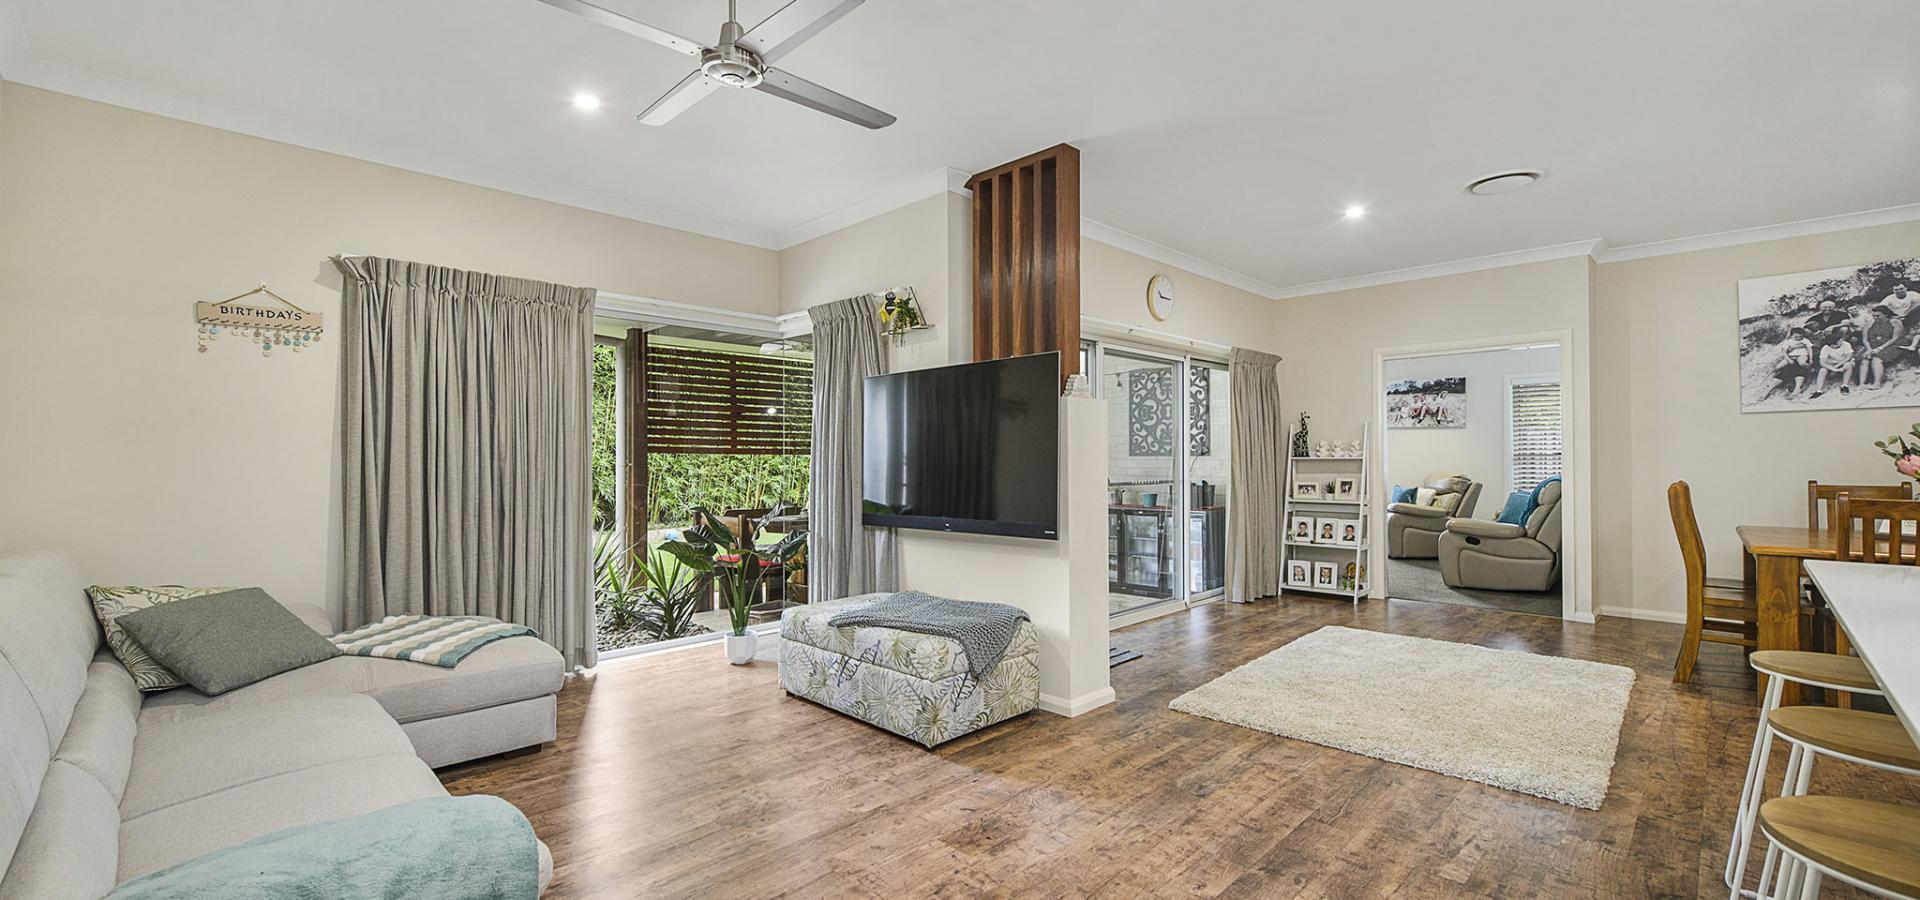 Picture-perfect Family Home With Something for Everyone